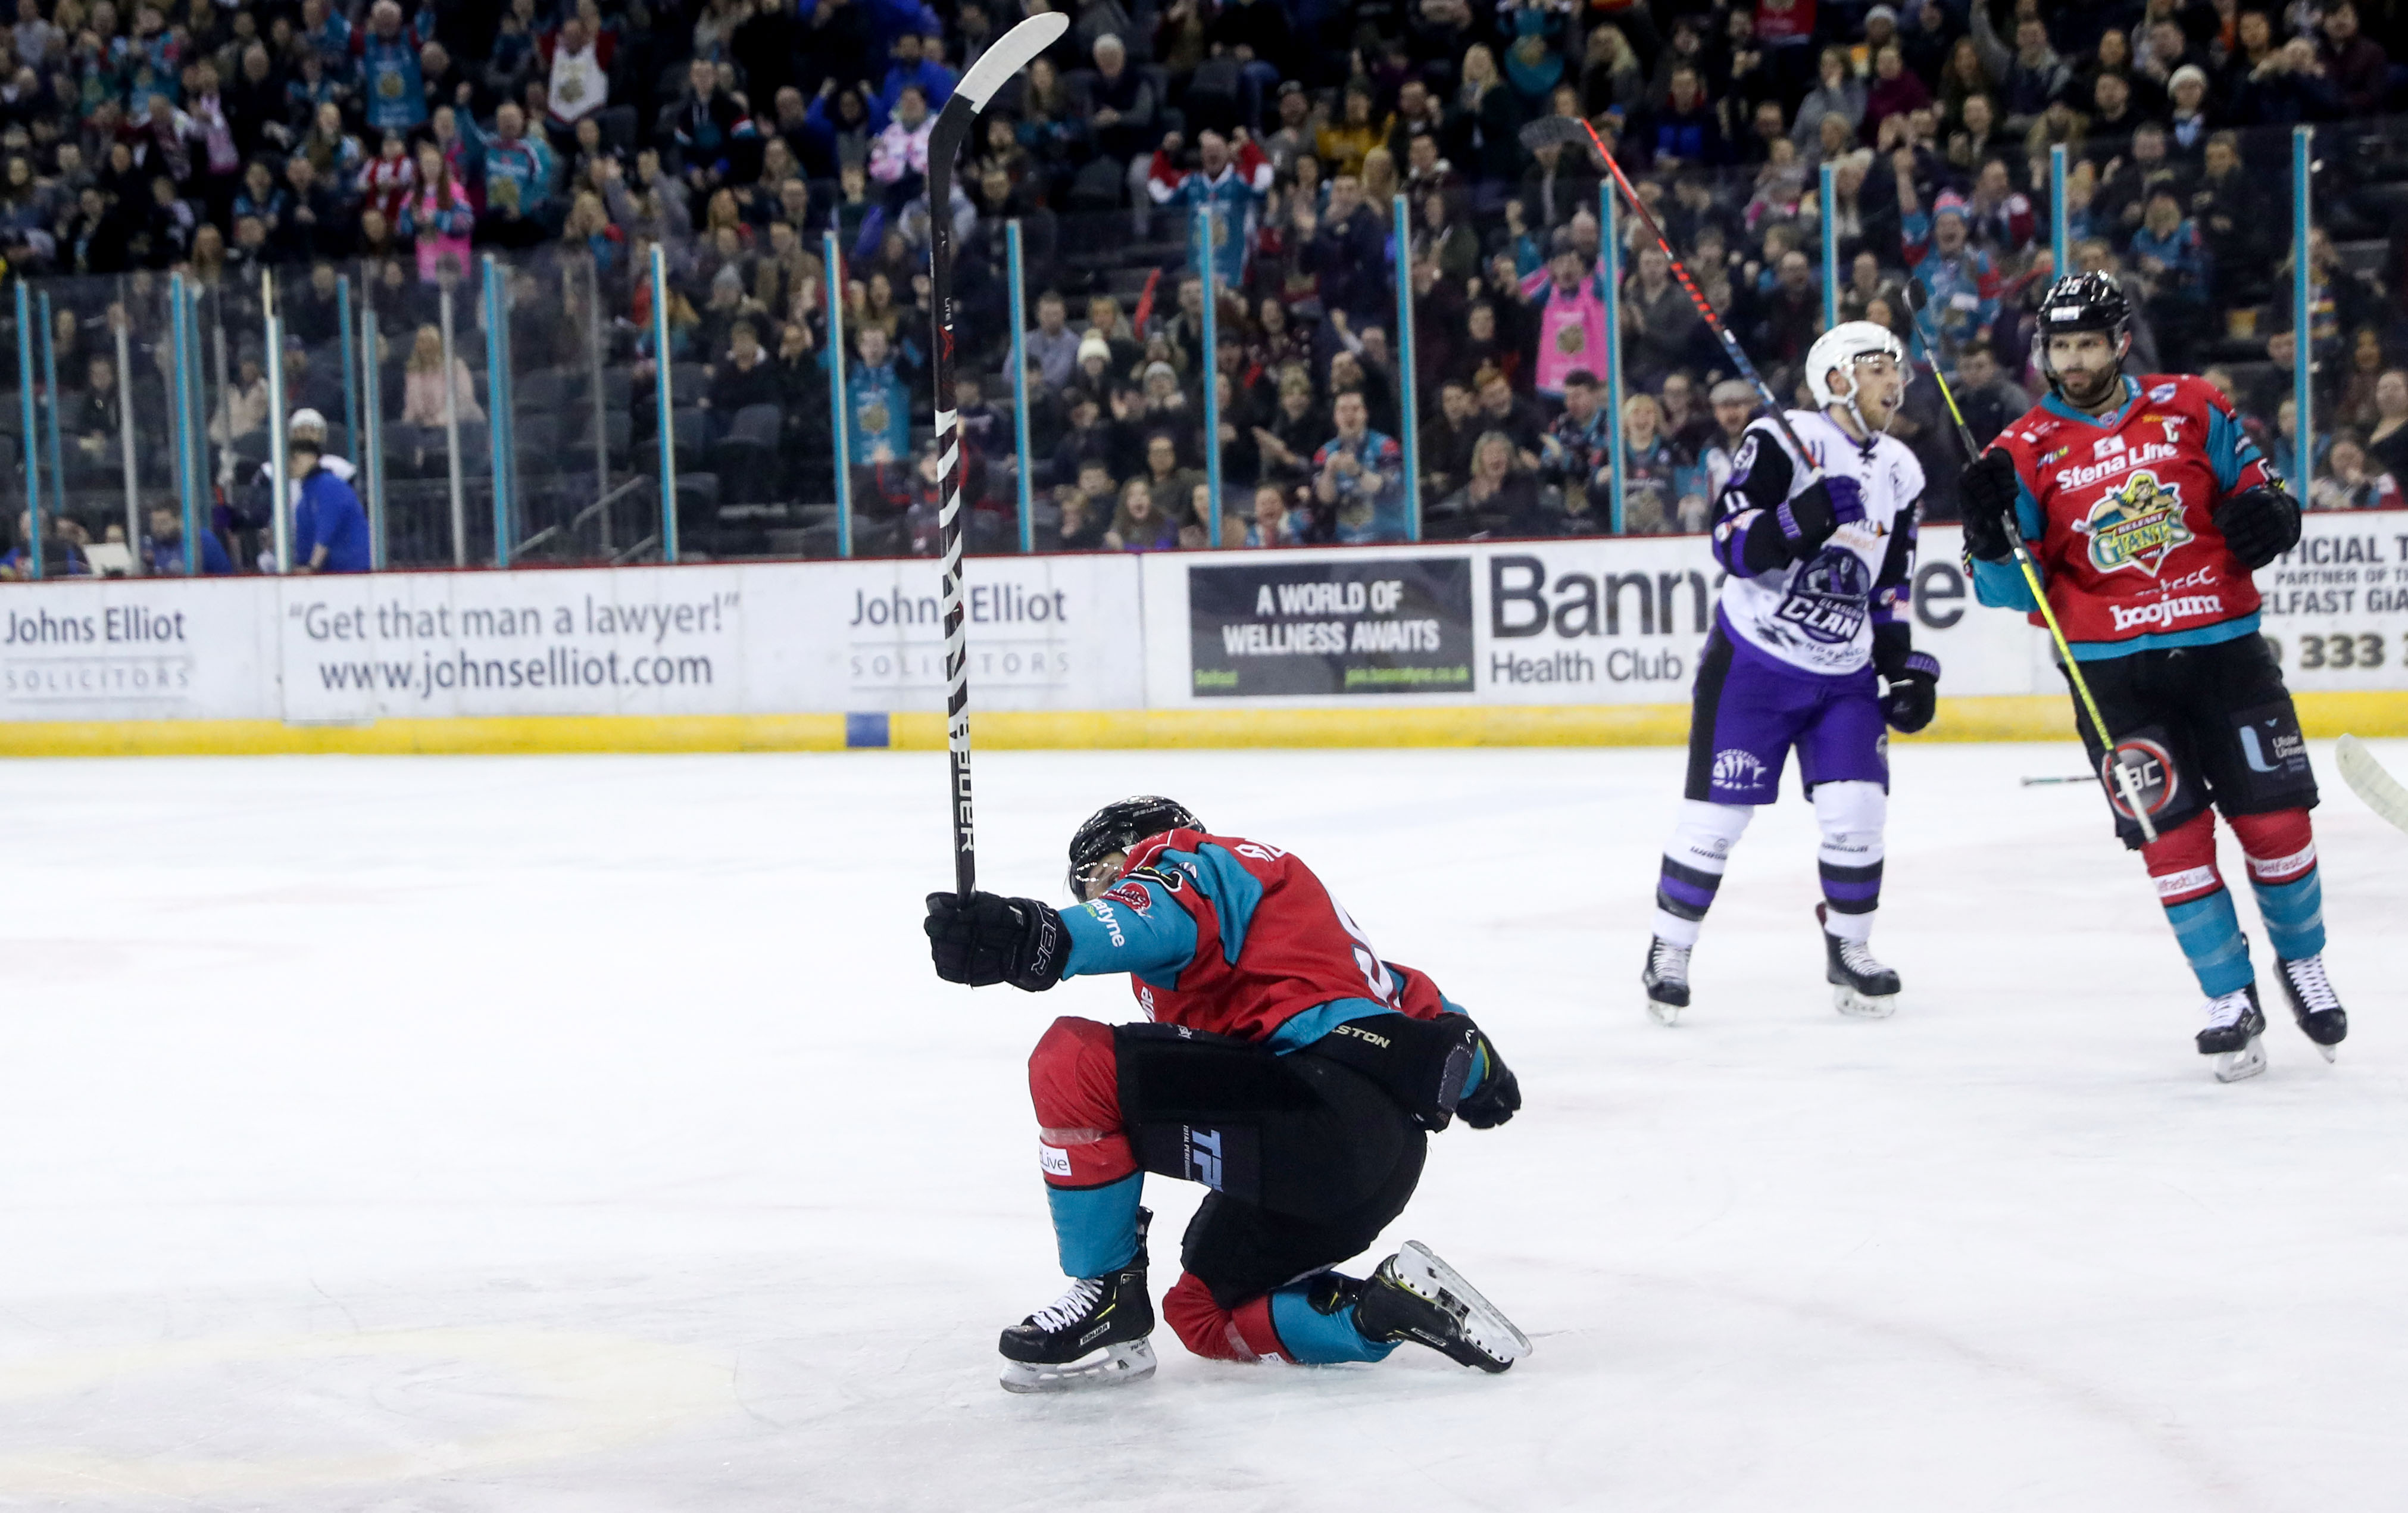 Belfast Giants v Glasgow Clan - Challenge Cup Semi Final 2nd Leg